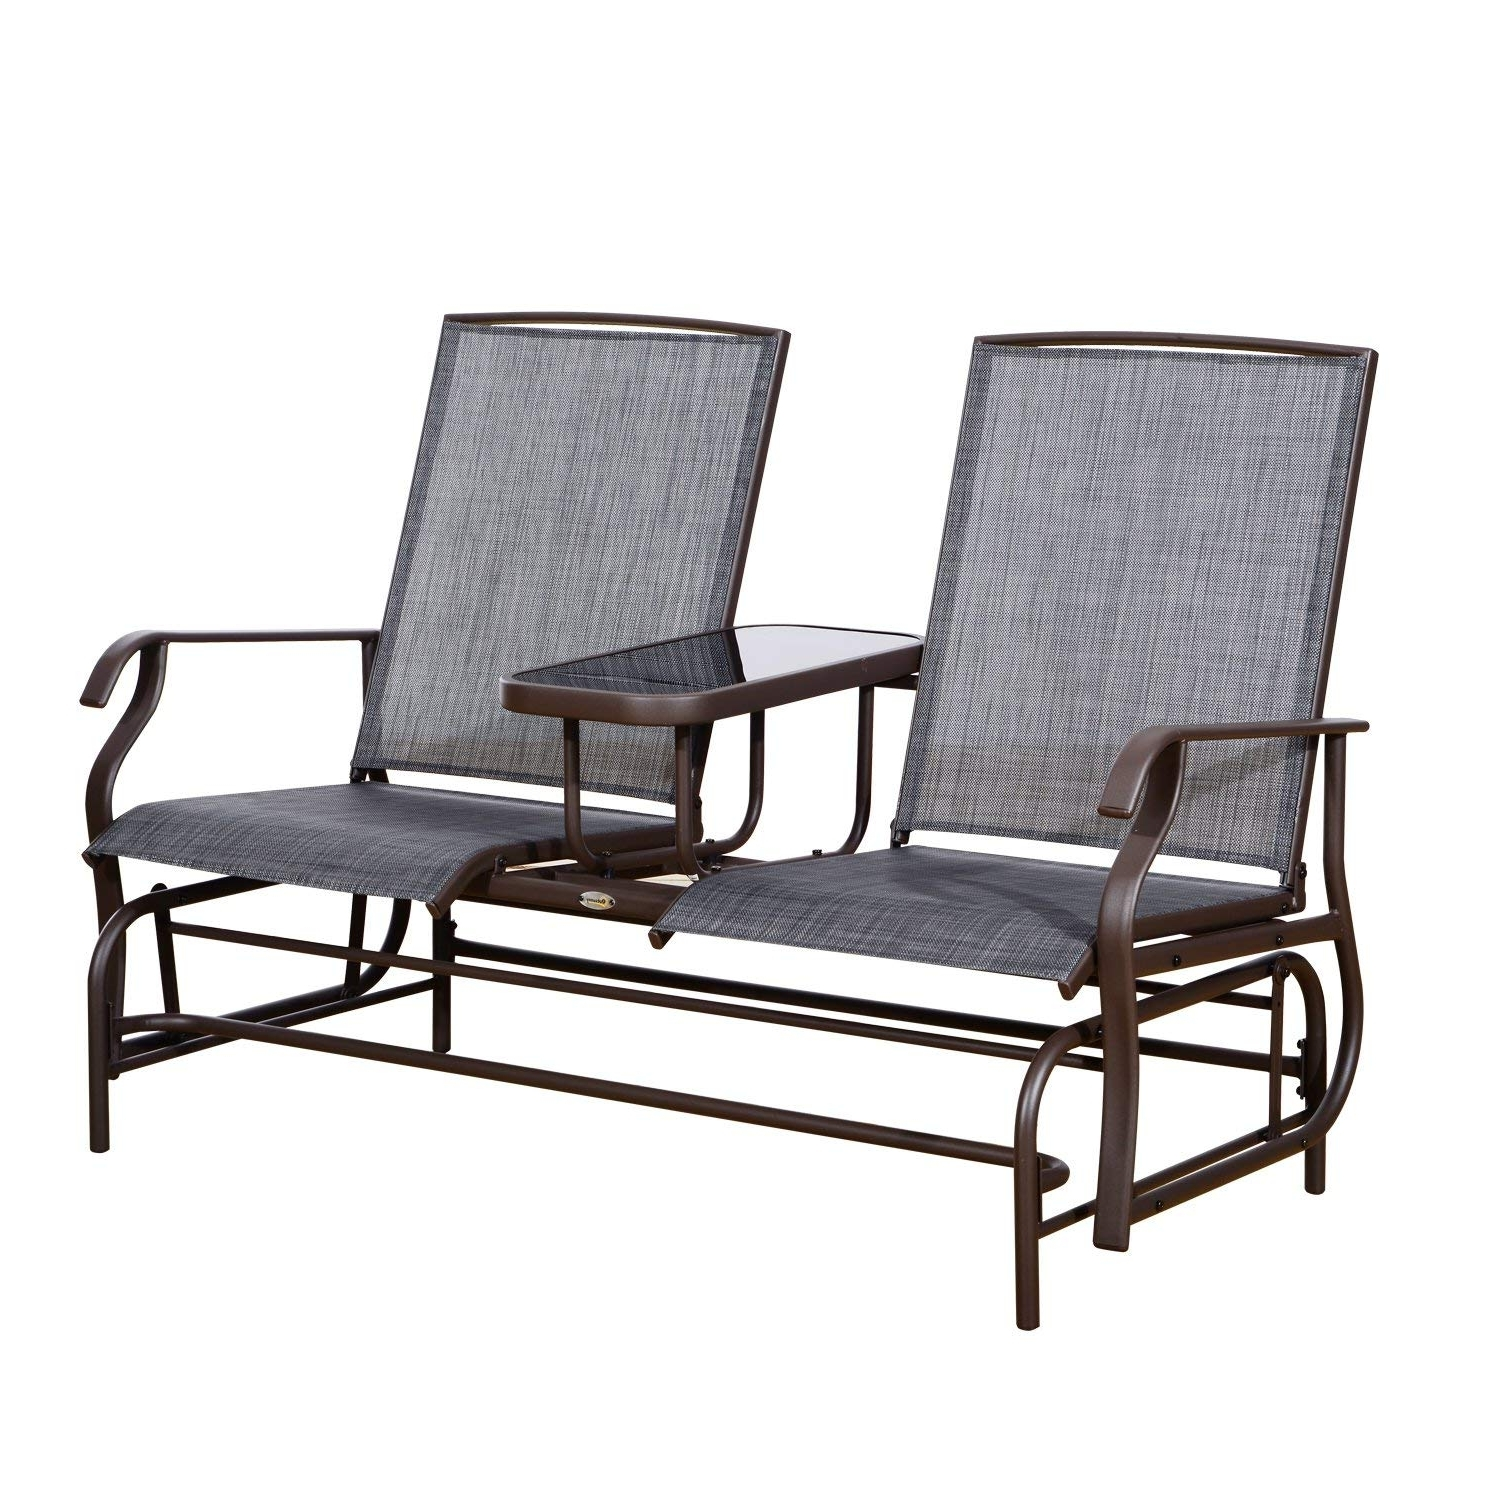 Famous Patio Furniture Rocking Benches Intended For Amazon : Outsunny 2 Person Outdoor Mesh Fabric Patio Double (View 4 of 15)